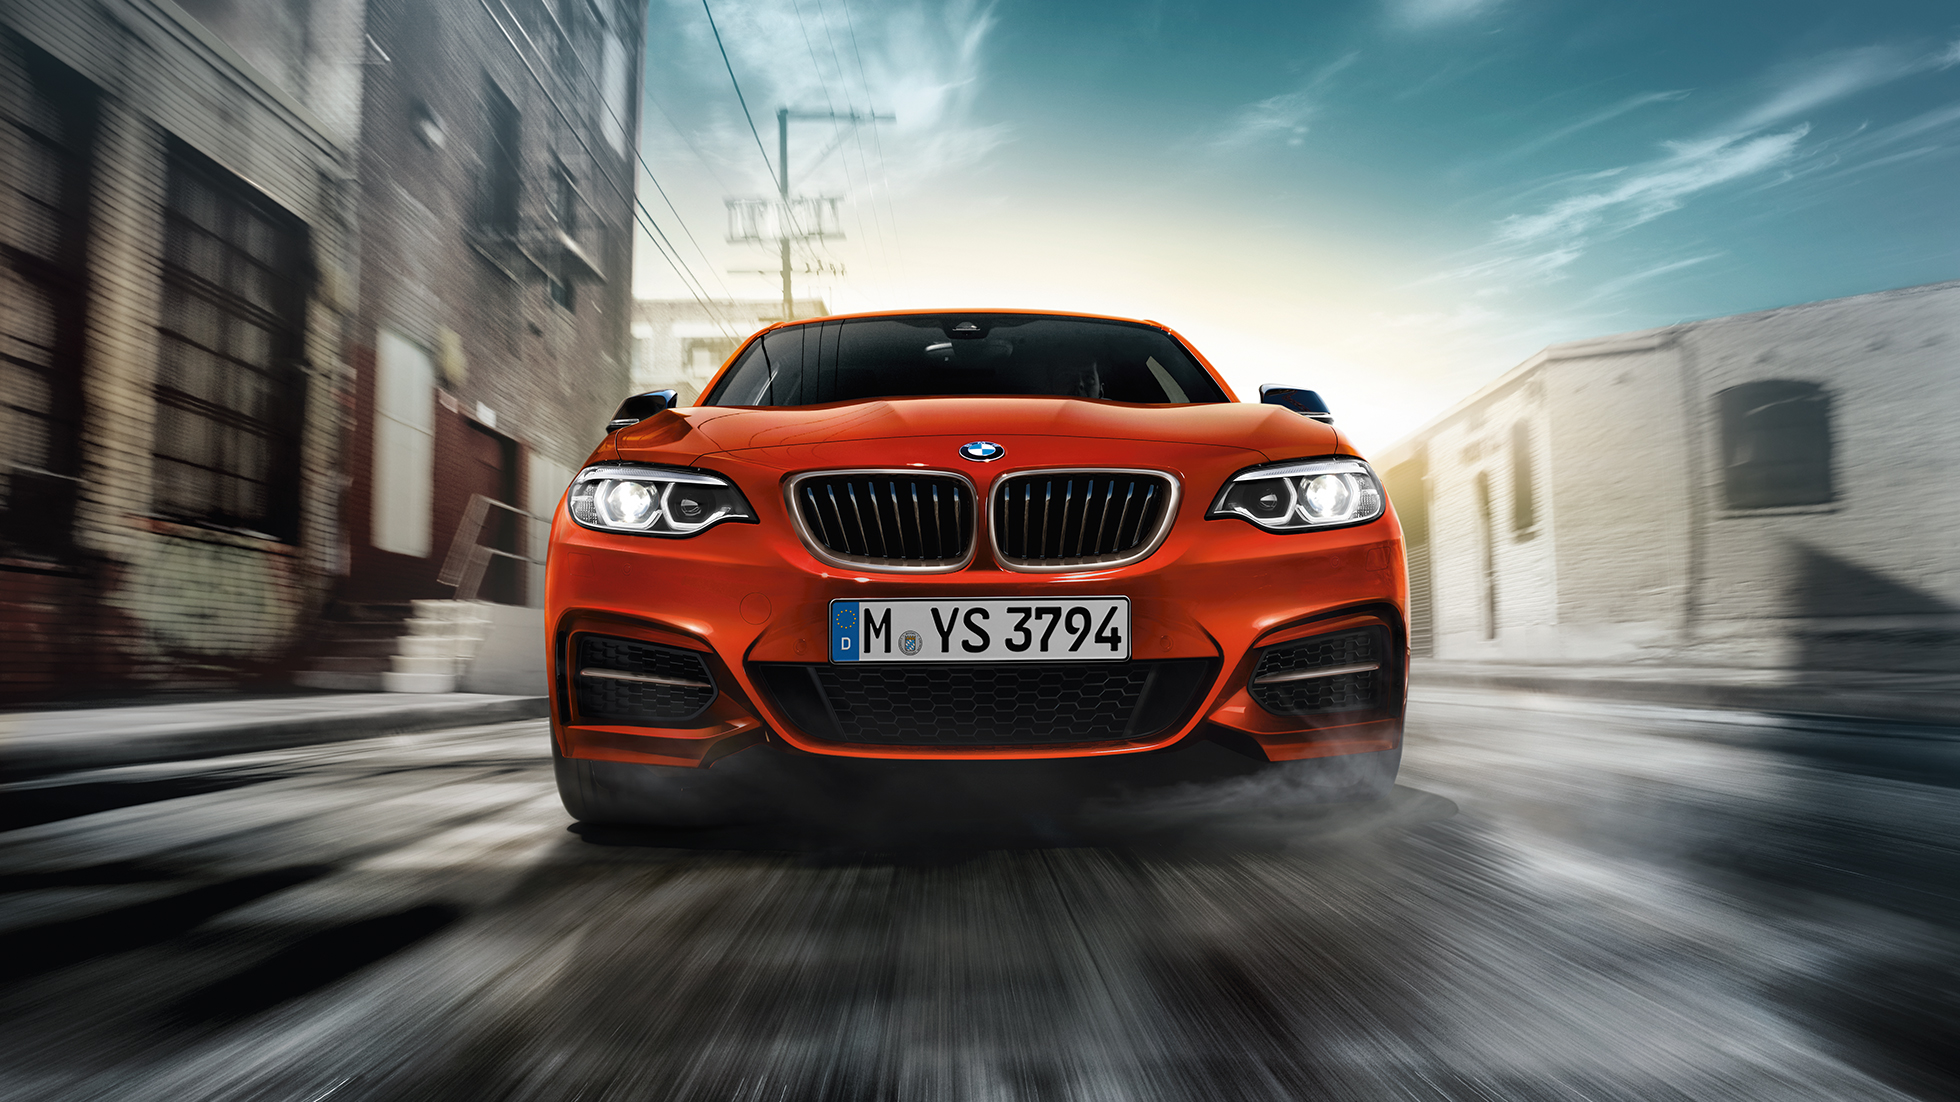 Diseño frontal del BMW M240i Coupé F22 2017 Sunset Orange metálico, vista frontal